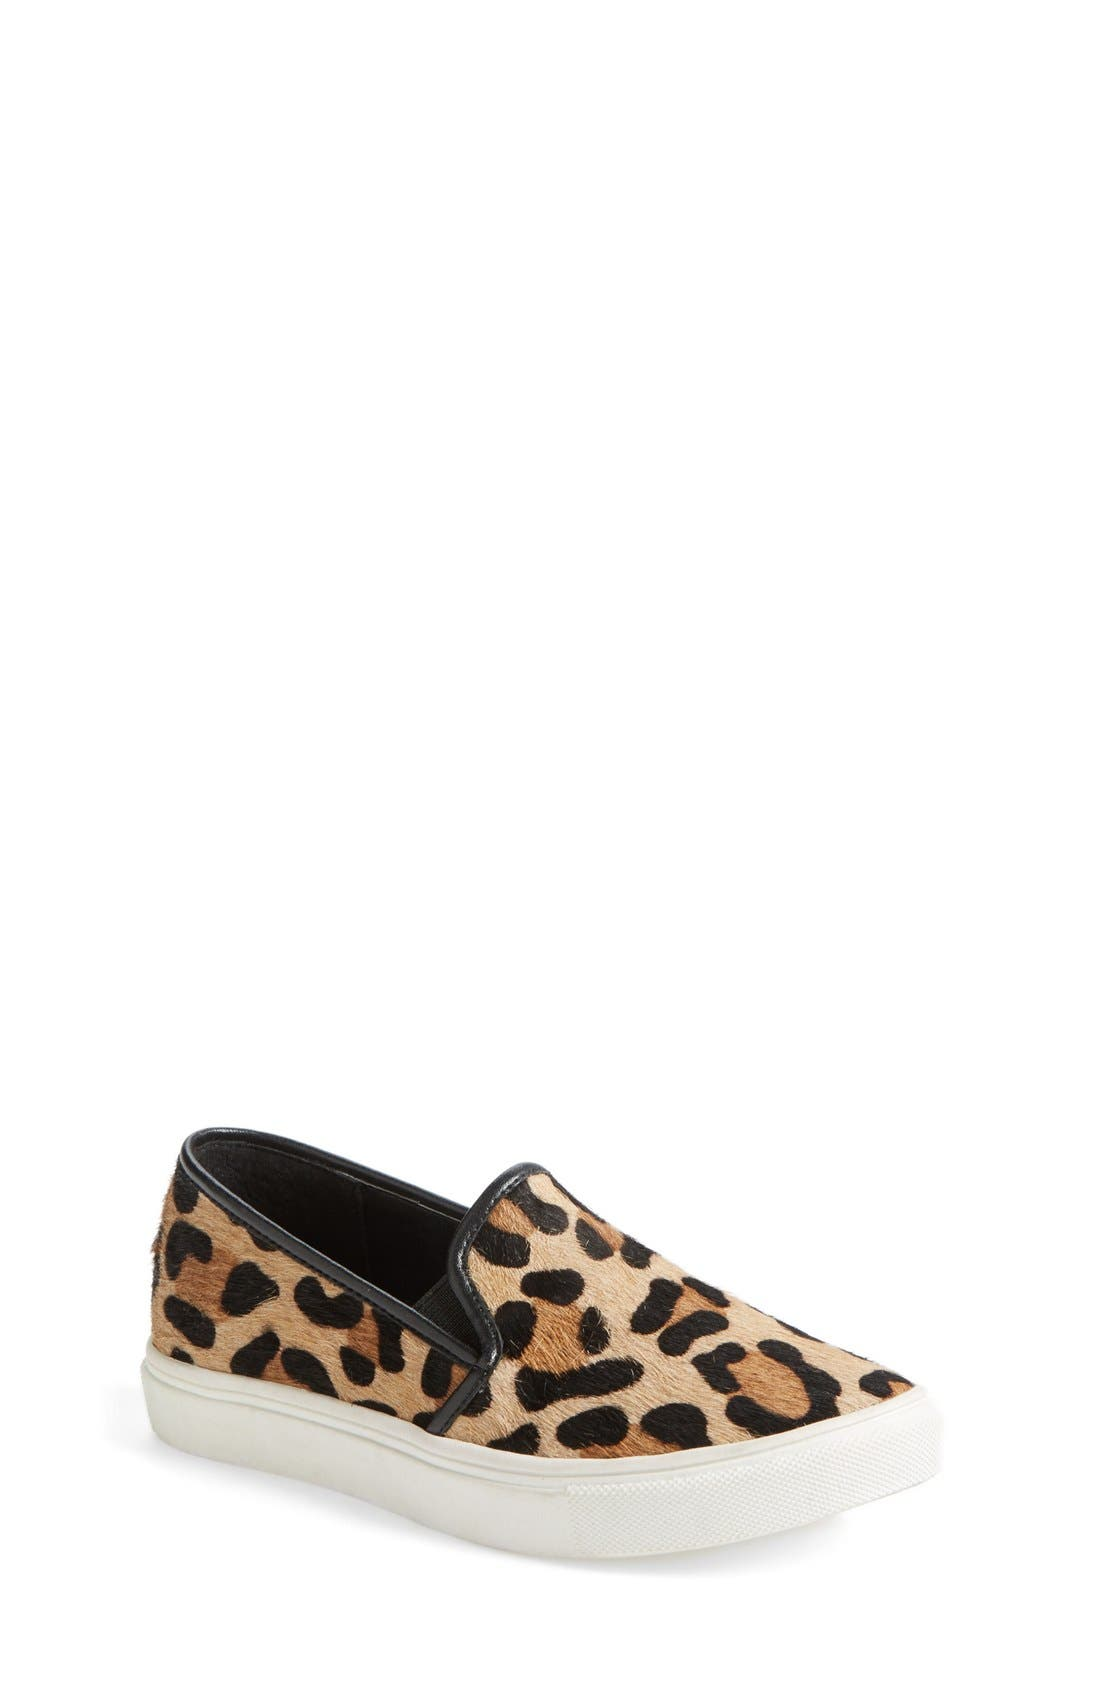 Main Image - Steve Madden 'Ecntric' Calf Hair Slip-On (Little Kid & Big Kid)